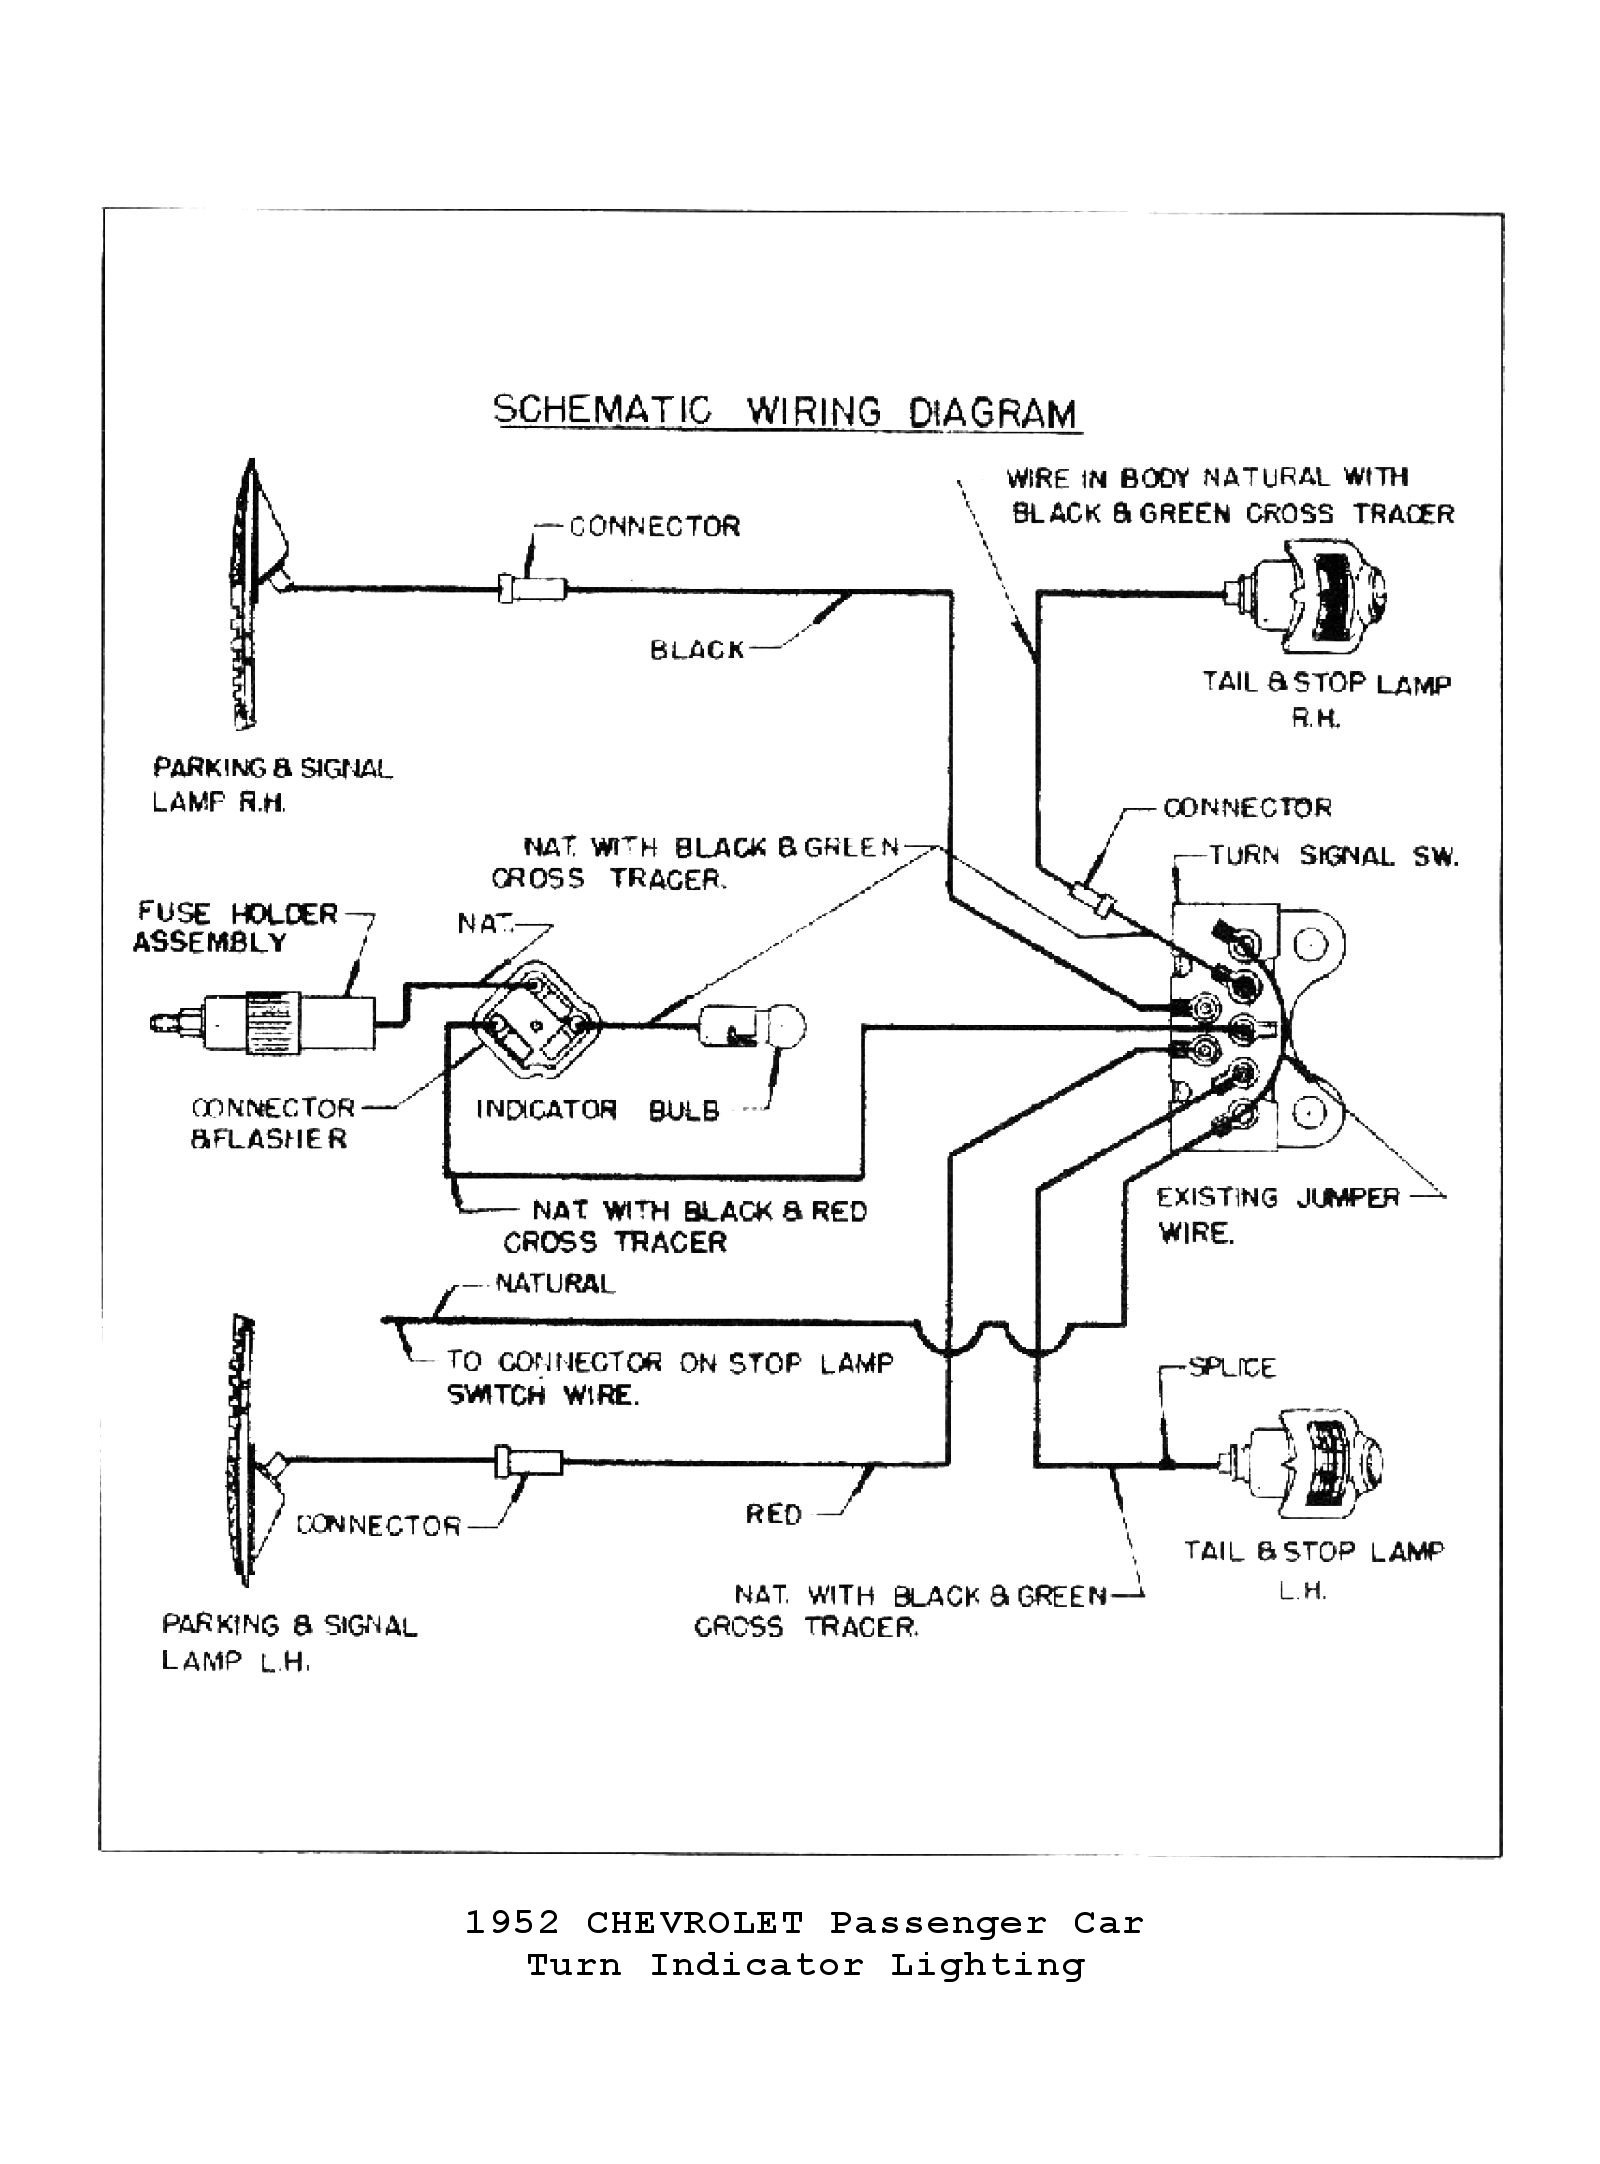 55 Chevy Wiring Directional - Wiring Diagram Recent fear-room -  fear-room.cosavedereanapoli.it | Turn Signal Wiring Diagram Gm |  | fear-room.cosavedereanapoli.it